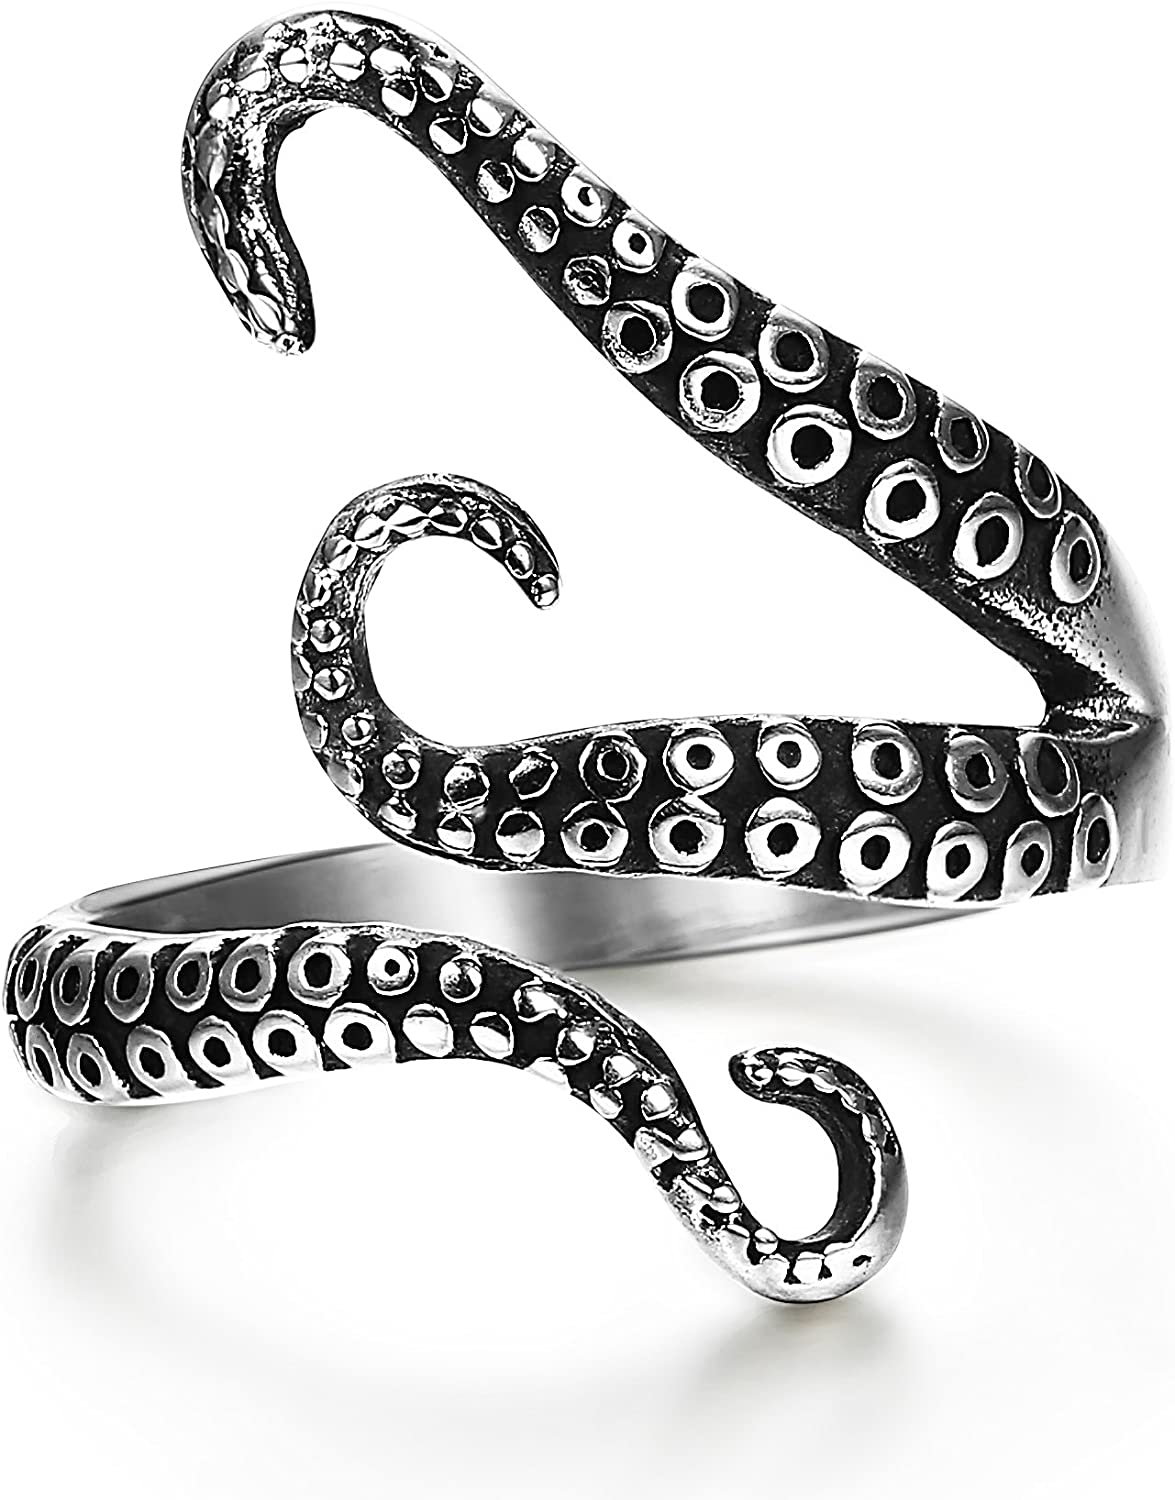 FIBO STEEL Stainless Steel Octopus Shape Rings for Men Women Vintage Rings,Size 7-13